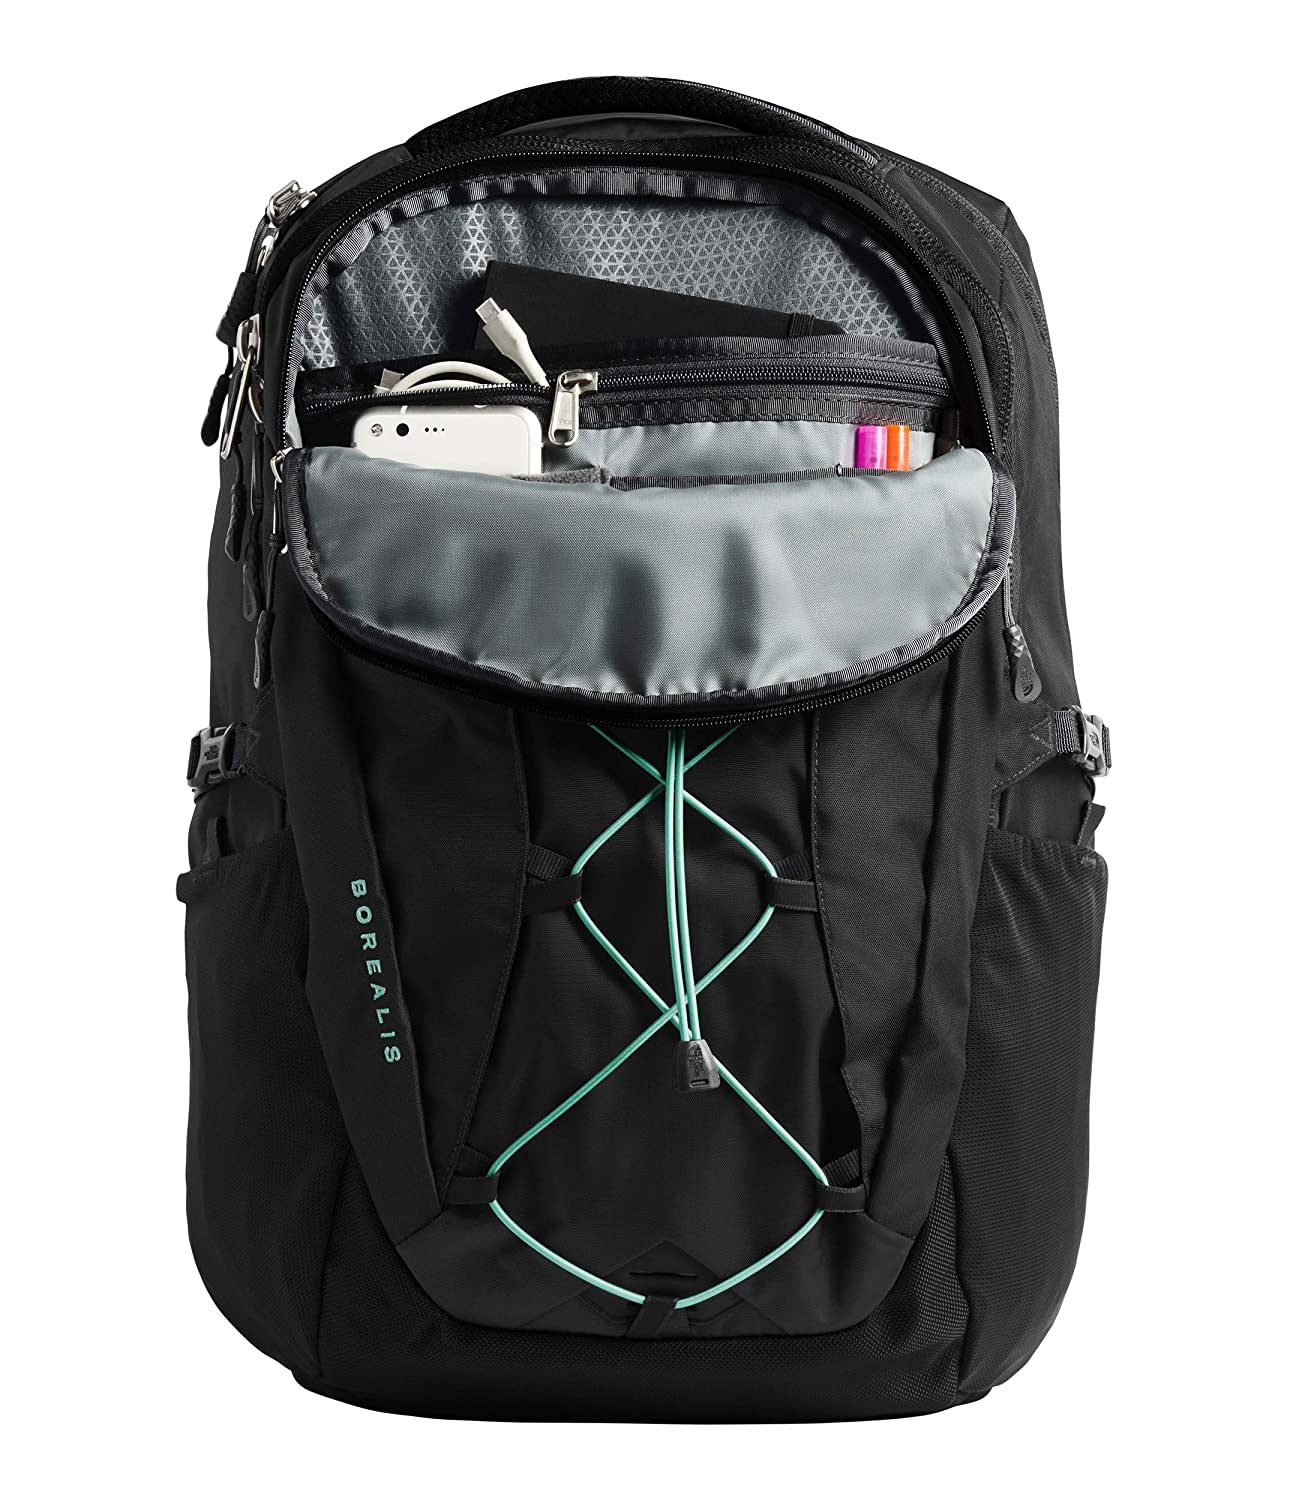 85dbce4a28 Amazon.com: The North Face Women's Borealis Laptop Backpack - 15